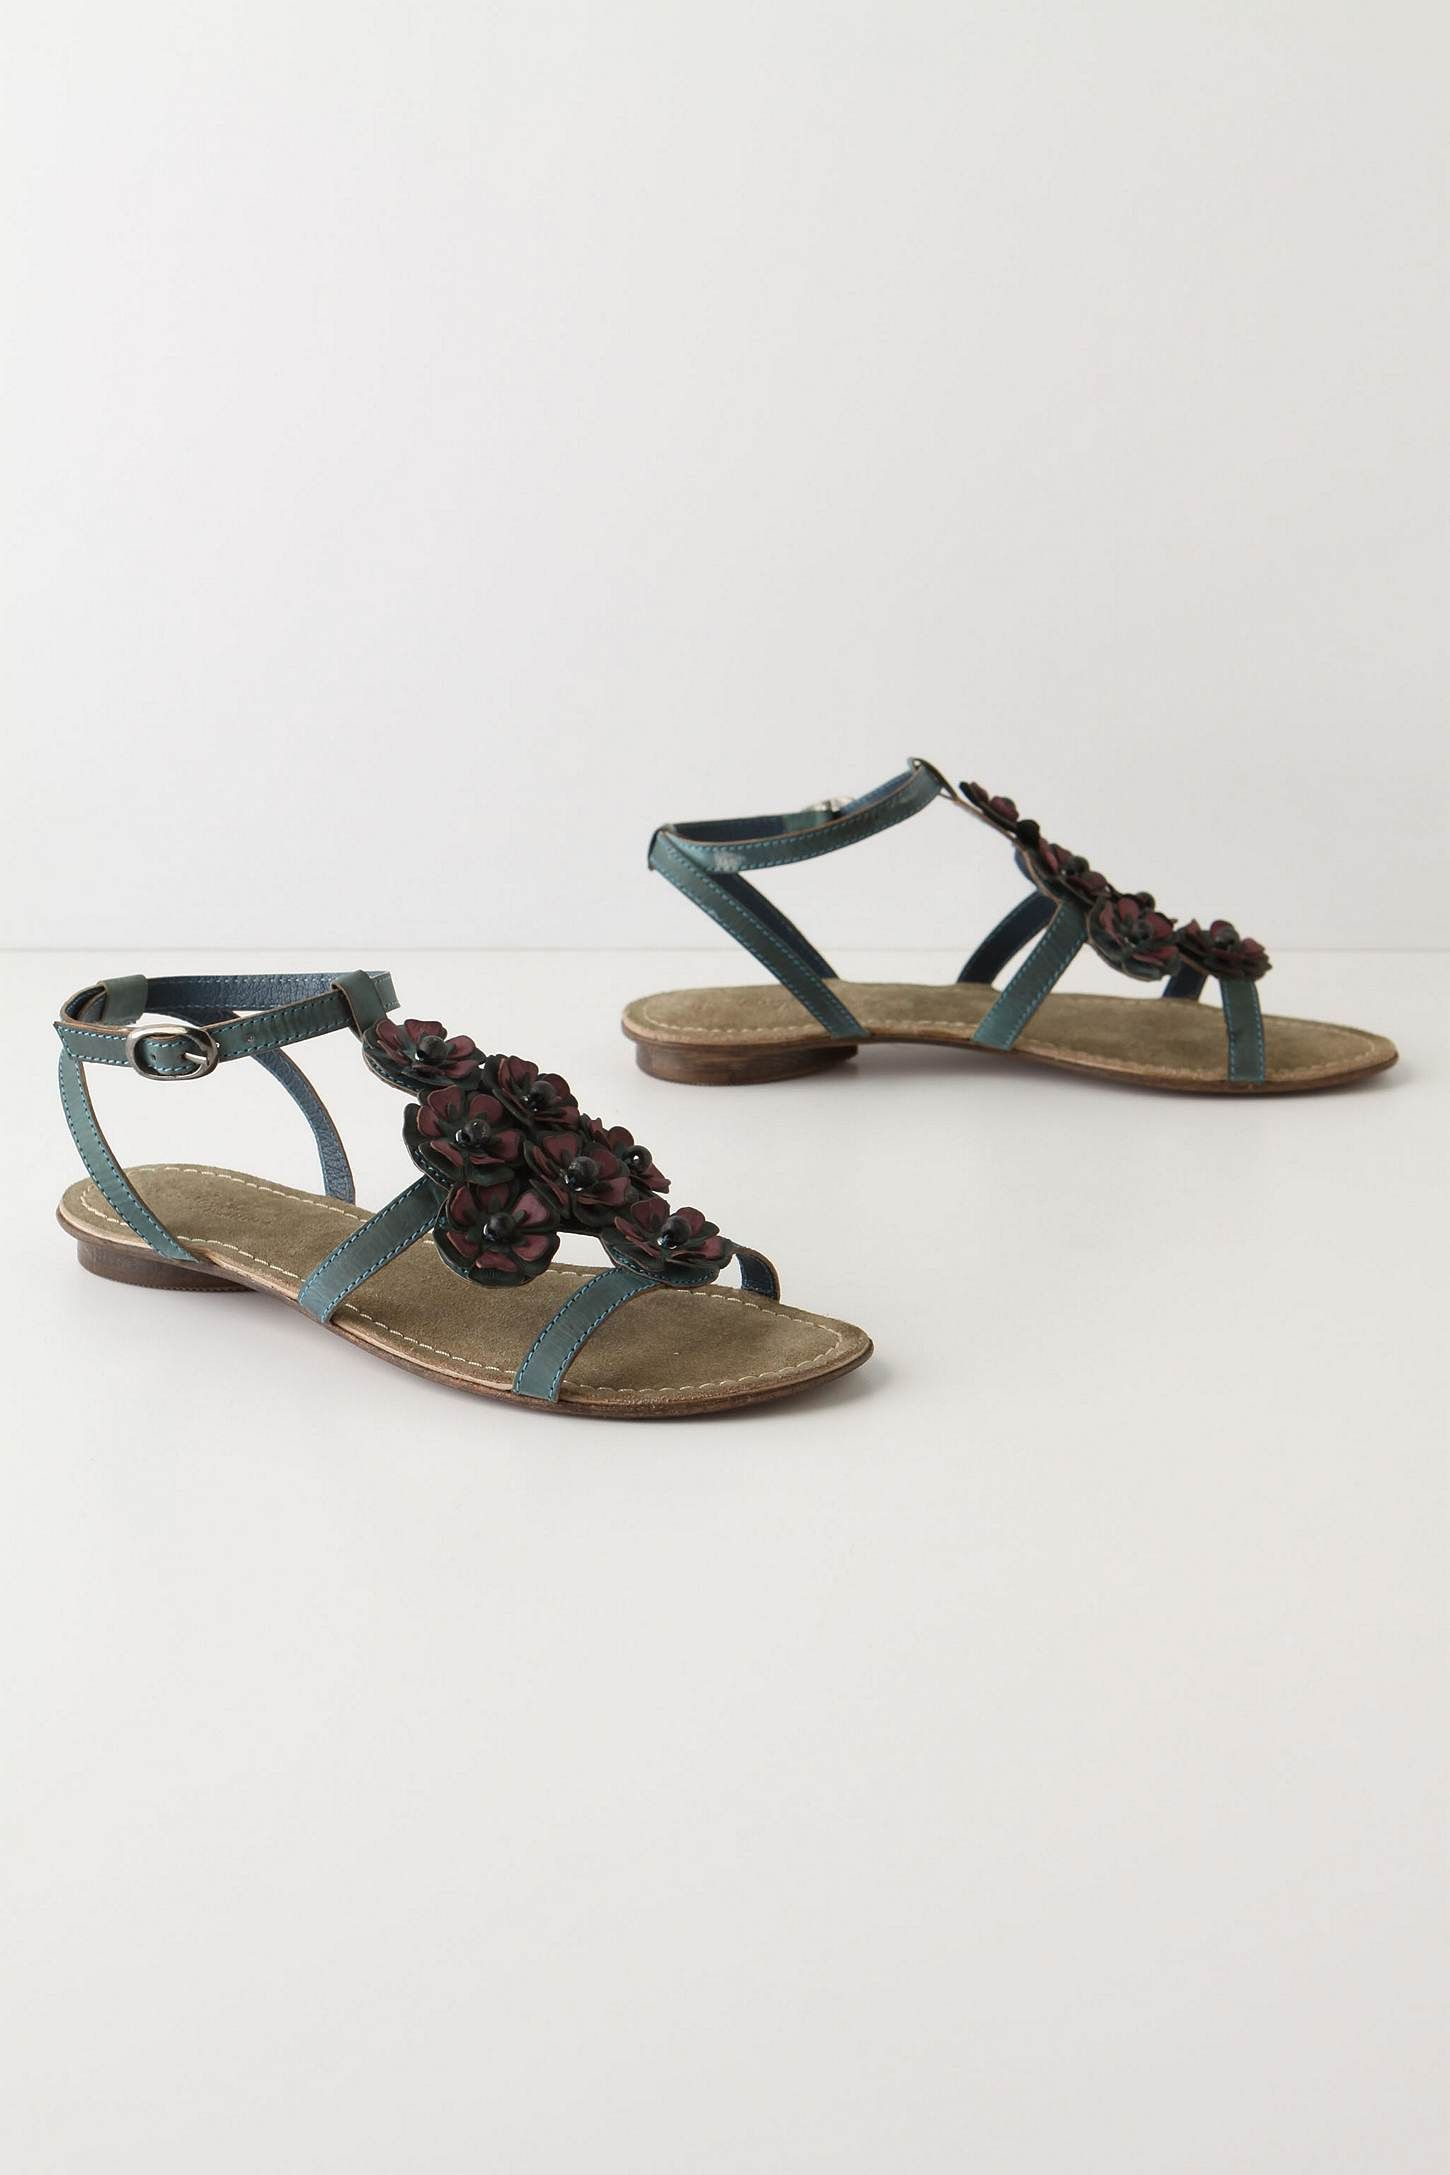 4e488dc6e3ca56 Eclipsed Alyssum Sandals - Anthro